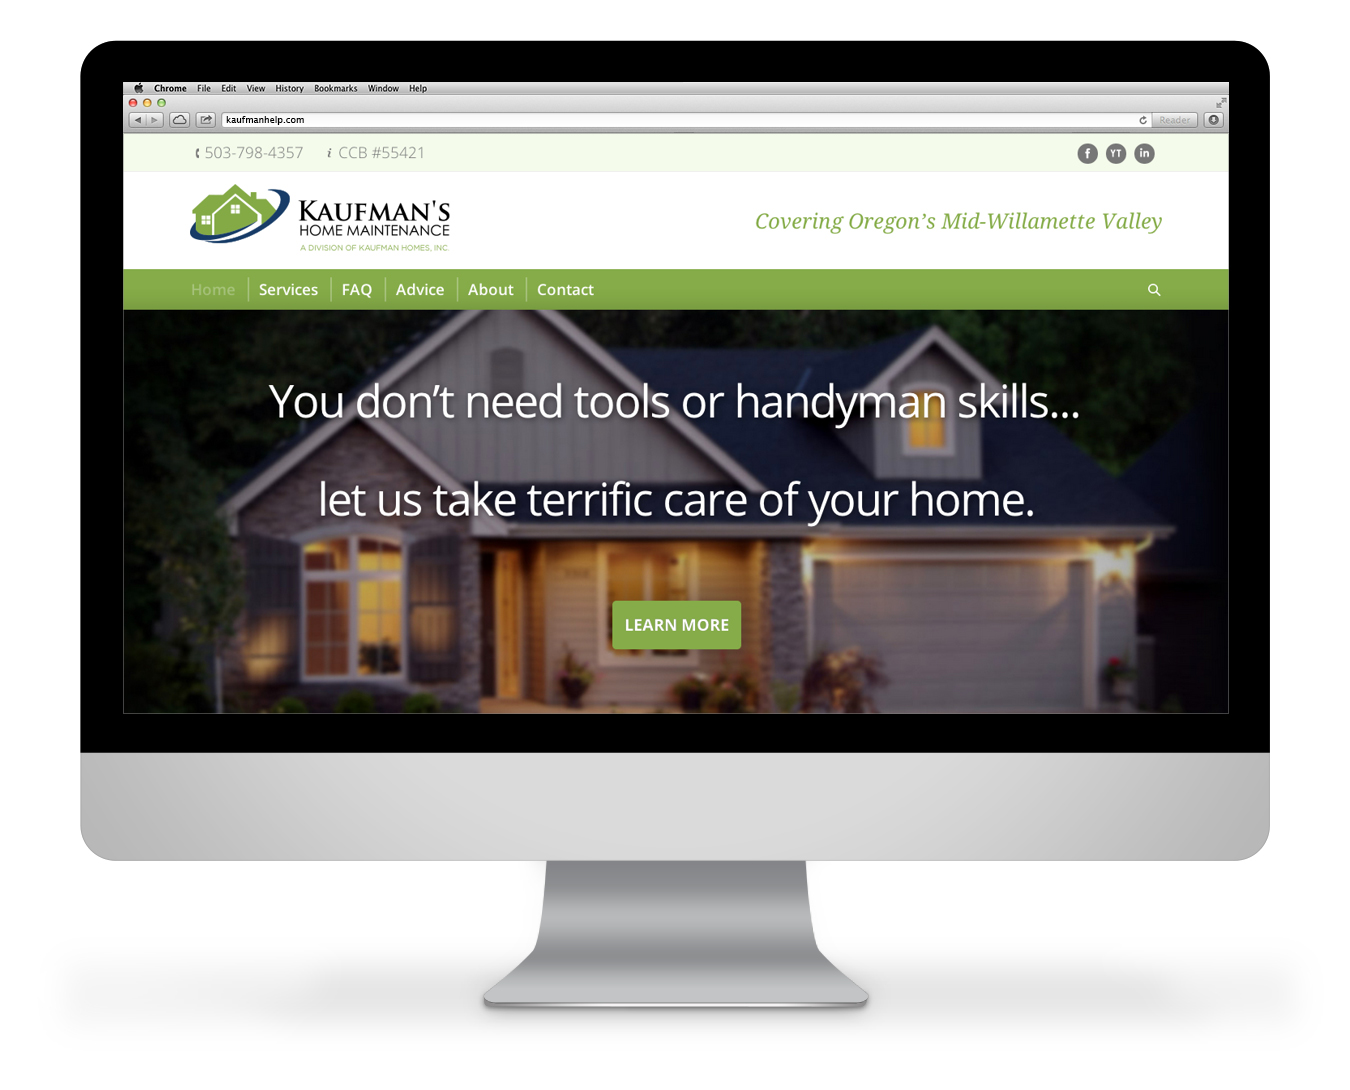 Website ideas and content reach homeowners